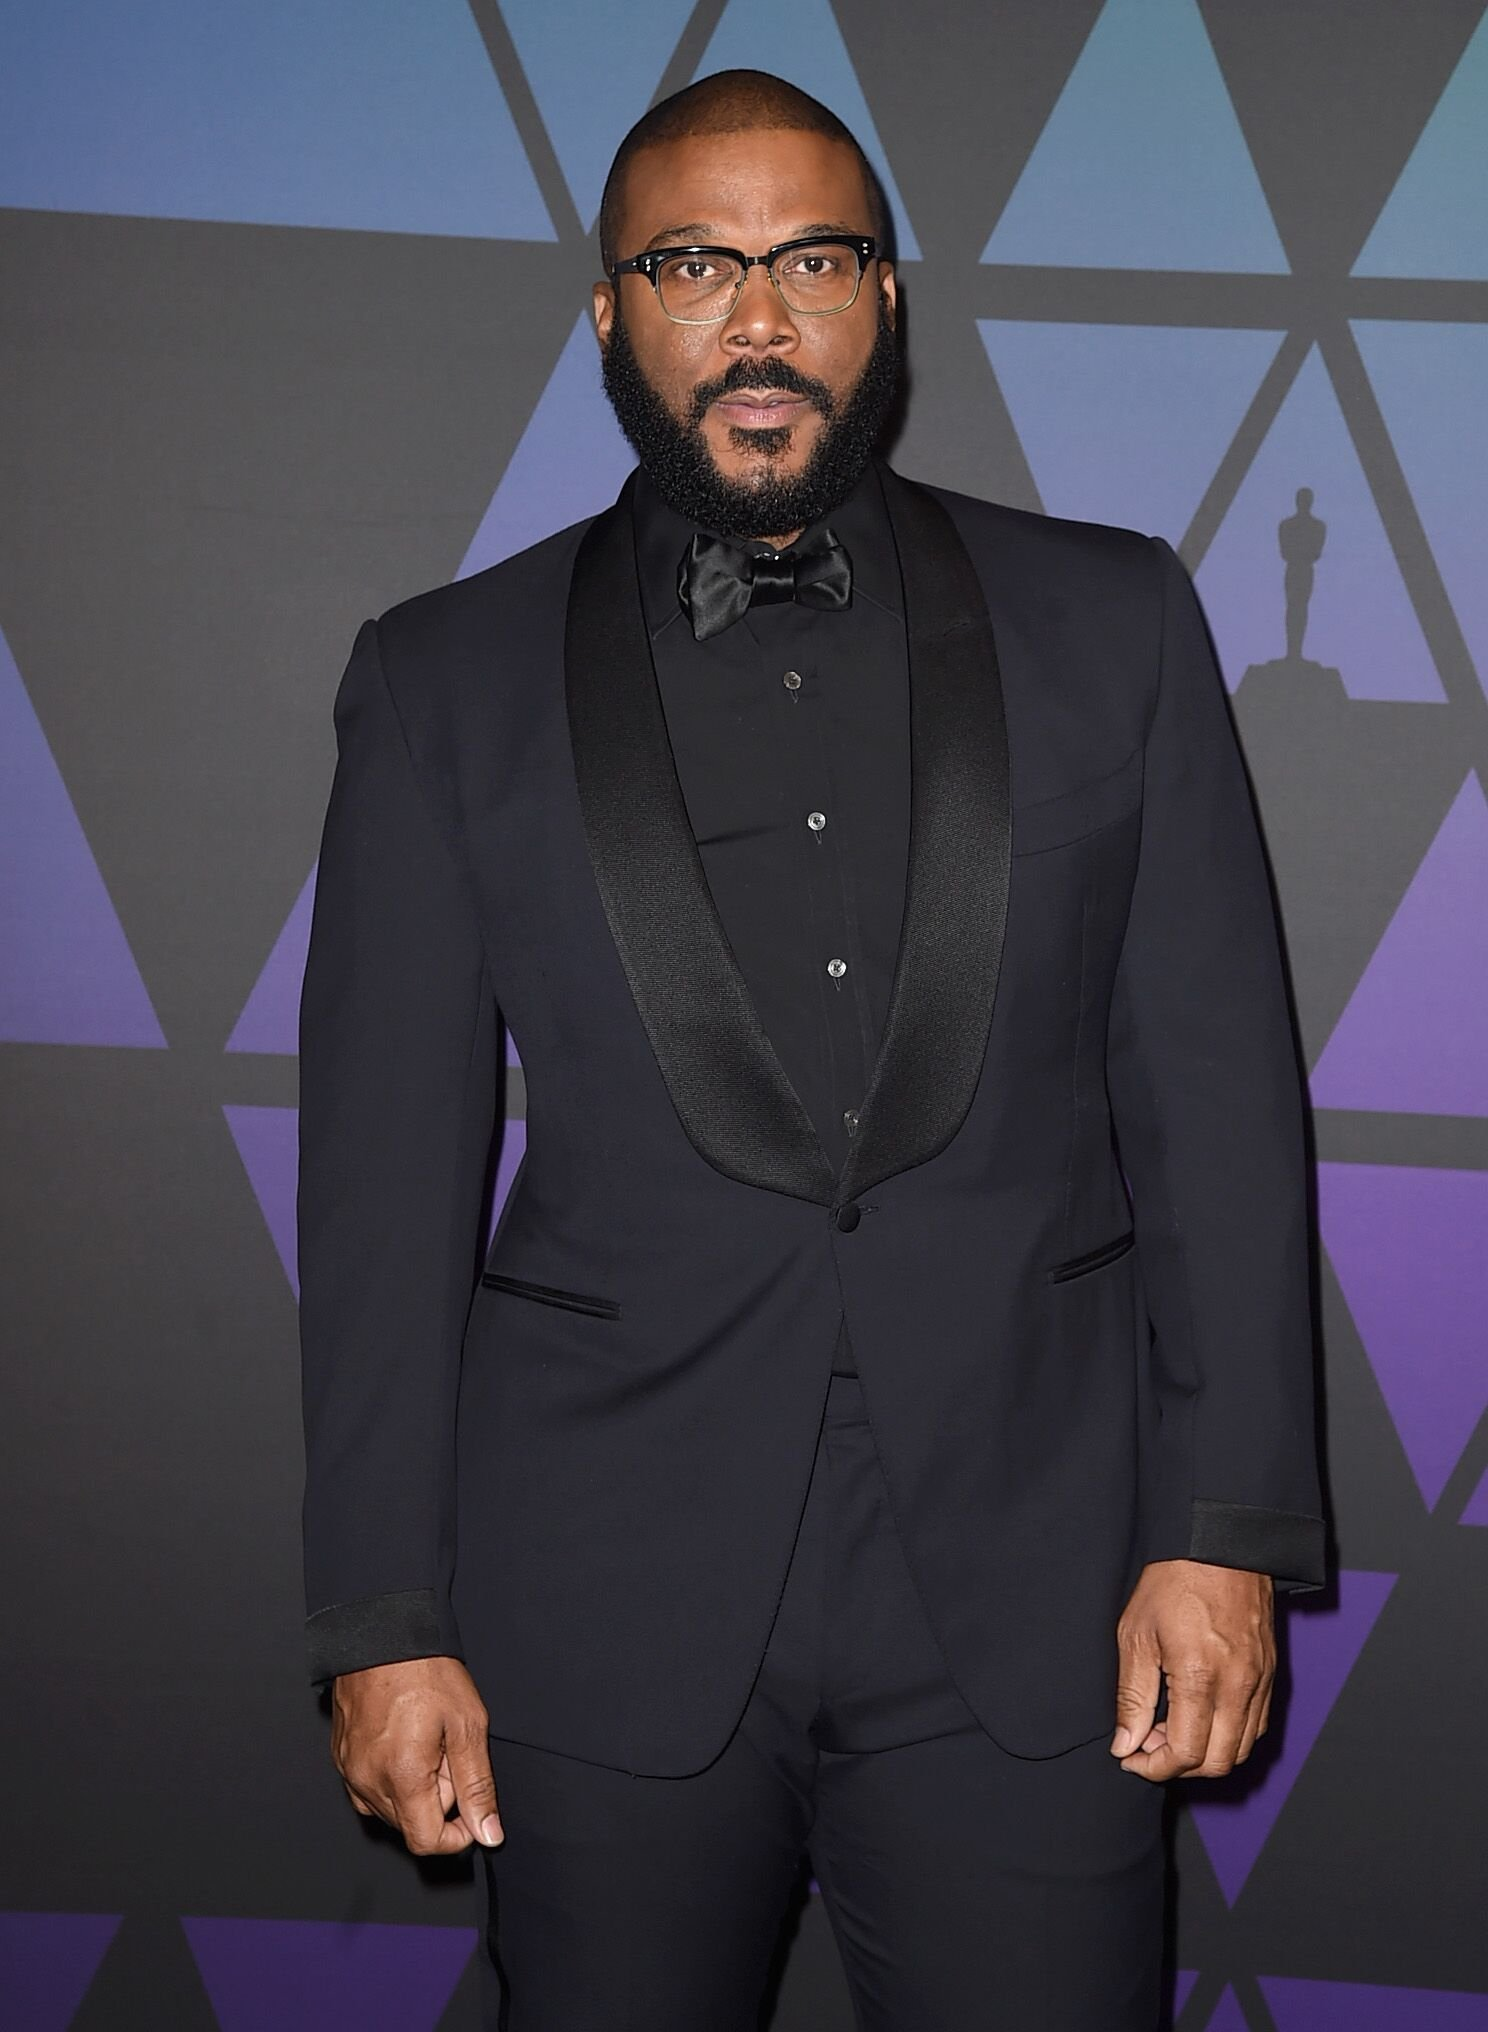 Tyler Perry at the Academy of Motion Picture Arts and Sciences' 10th annual Governors Awards/ Source: Getty Images